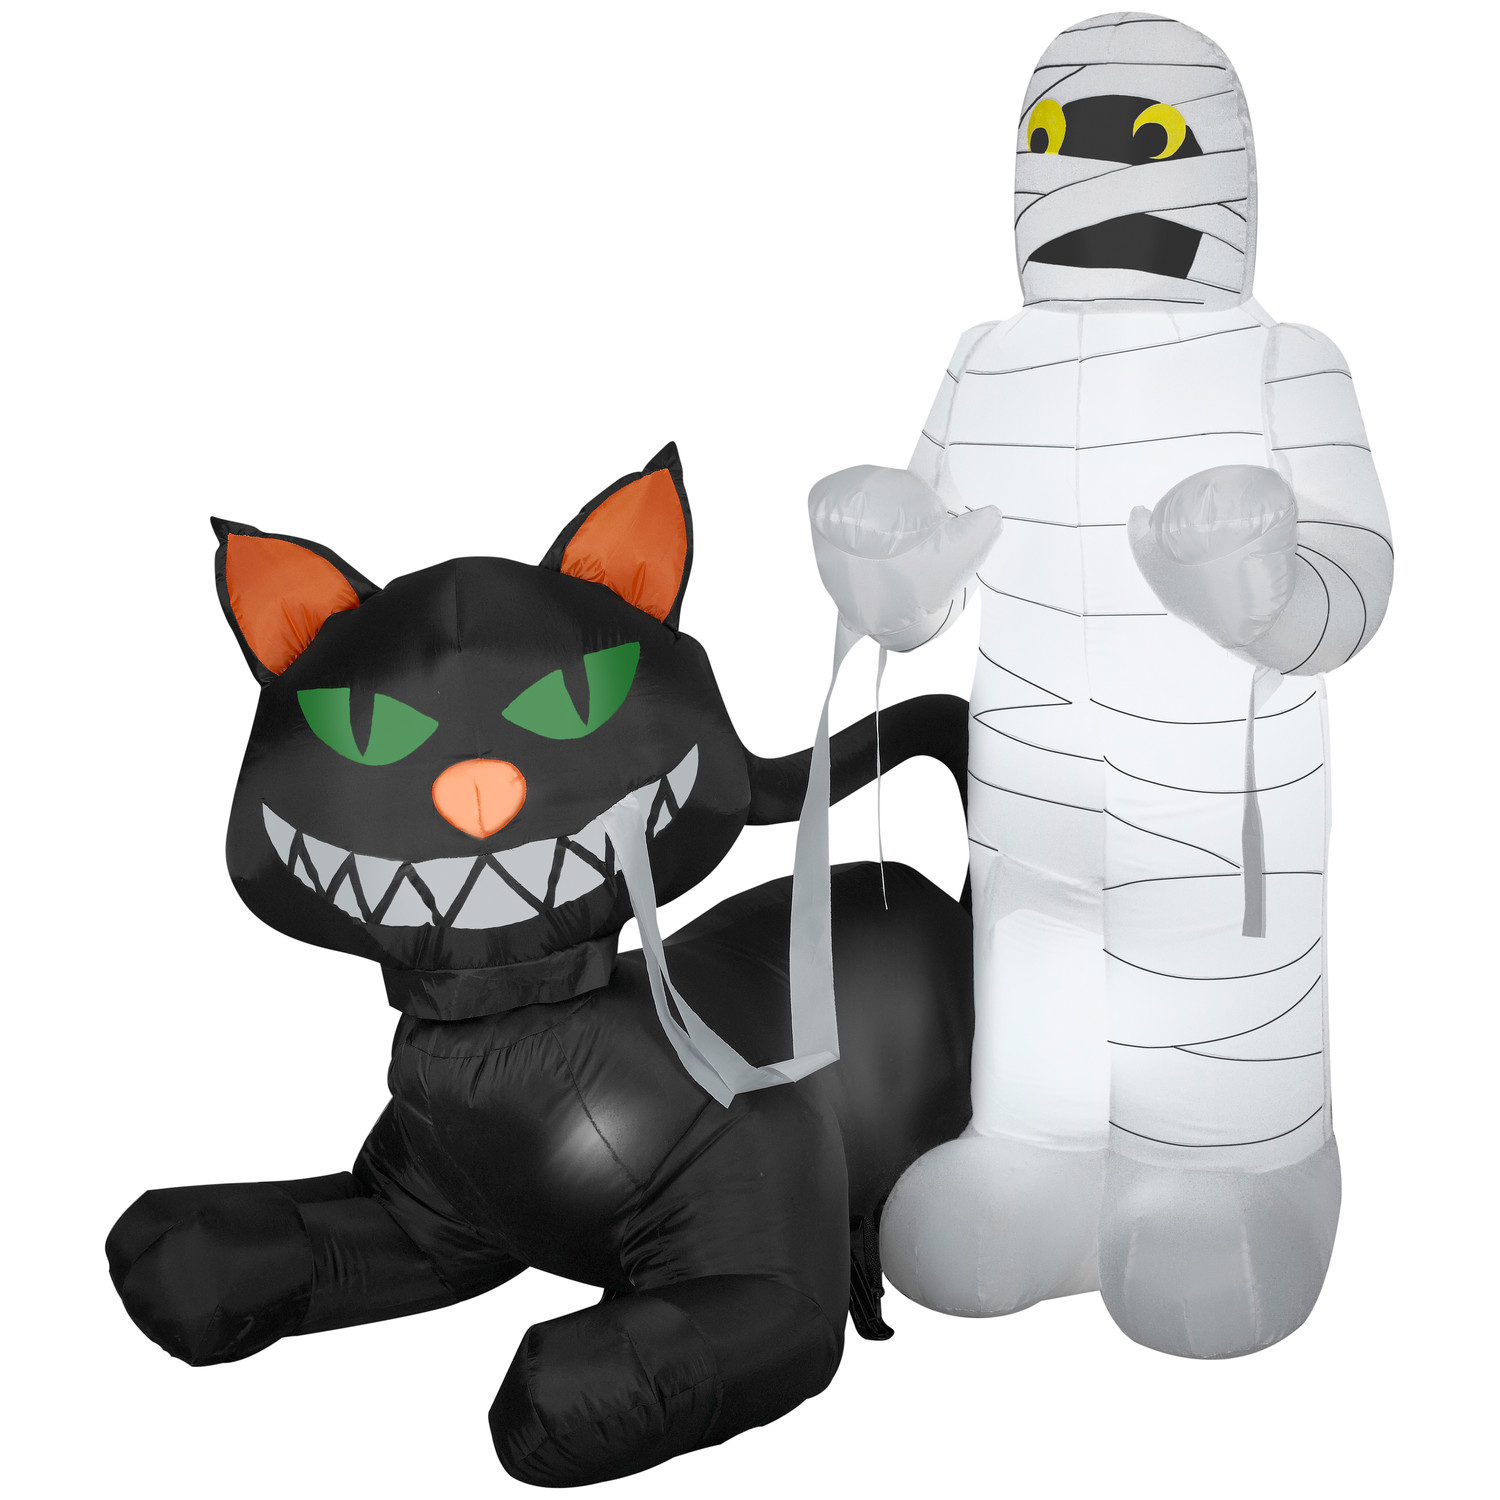 Outdoor inflatable halloween decorations - Yeah The Mummy Isn T Too Happy While The Cat Is Grinning Hope